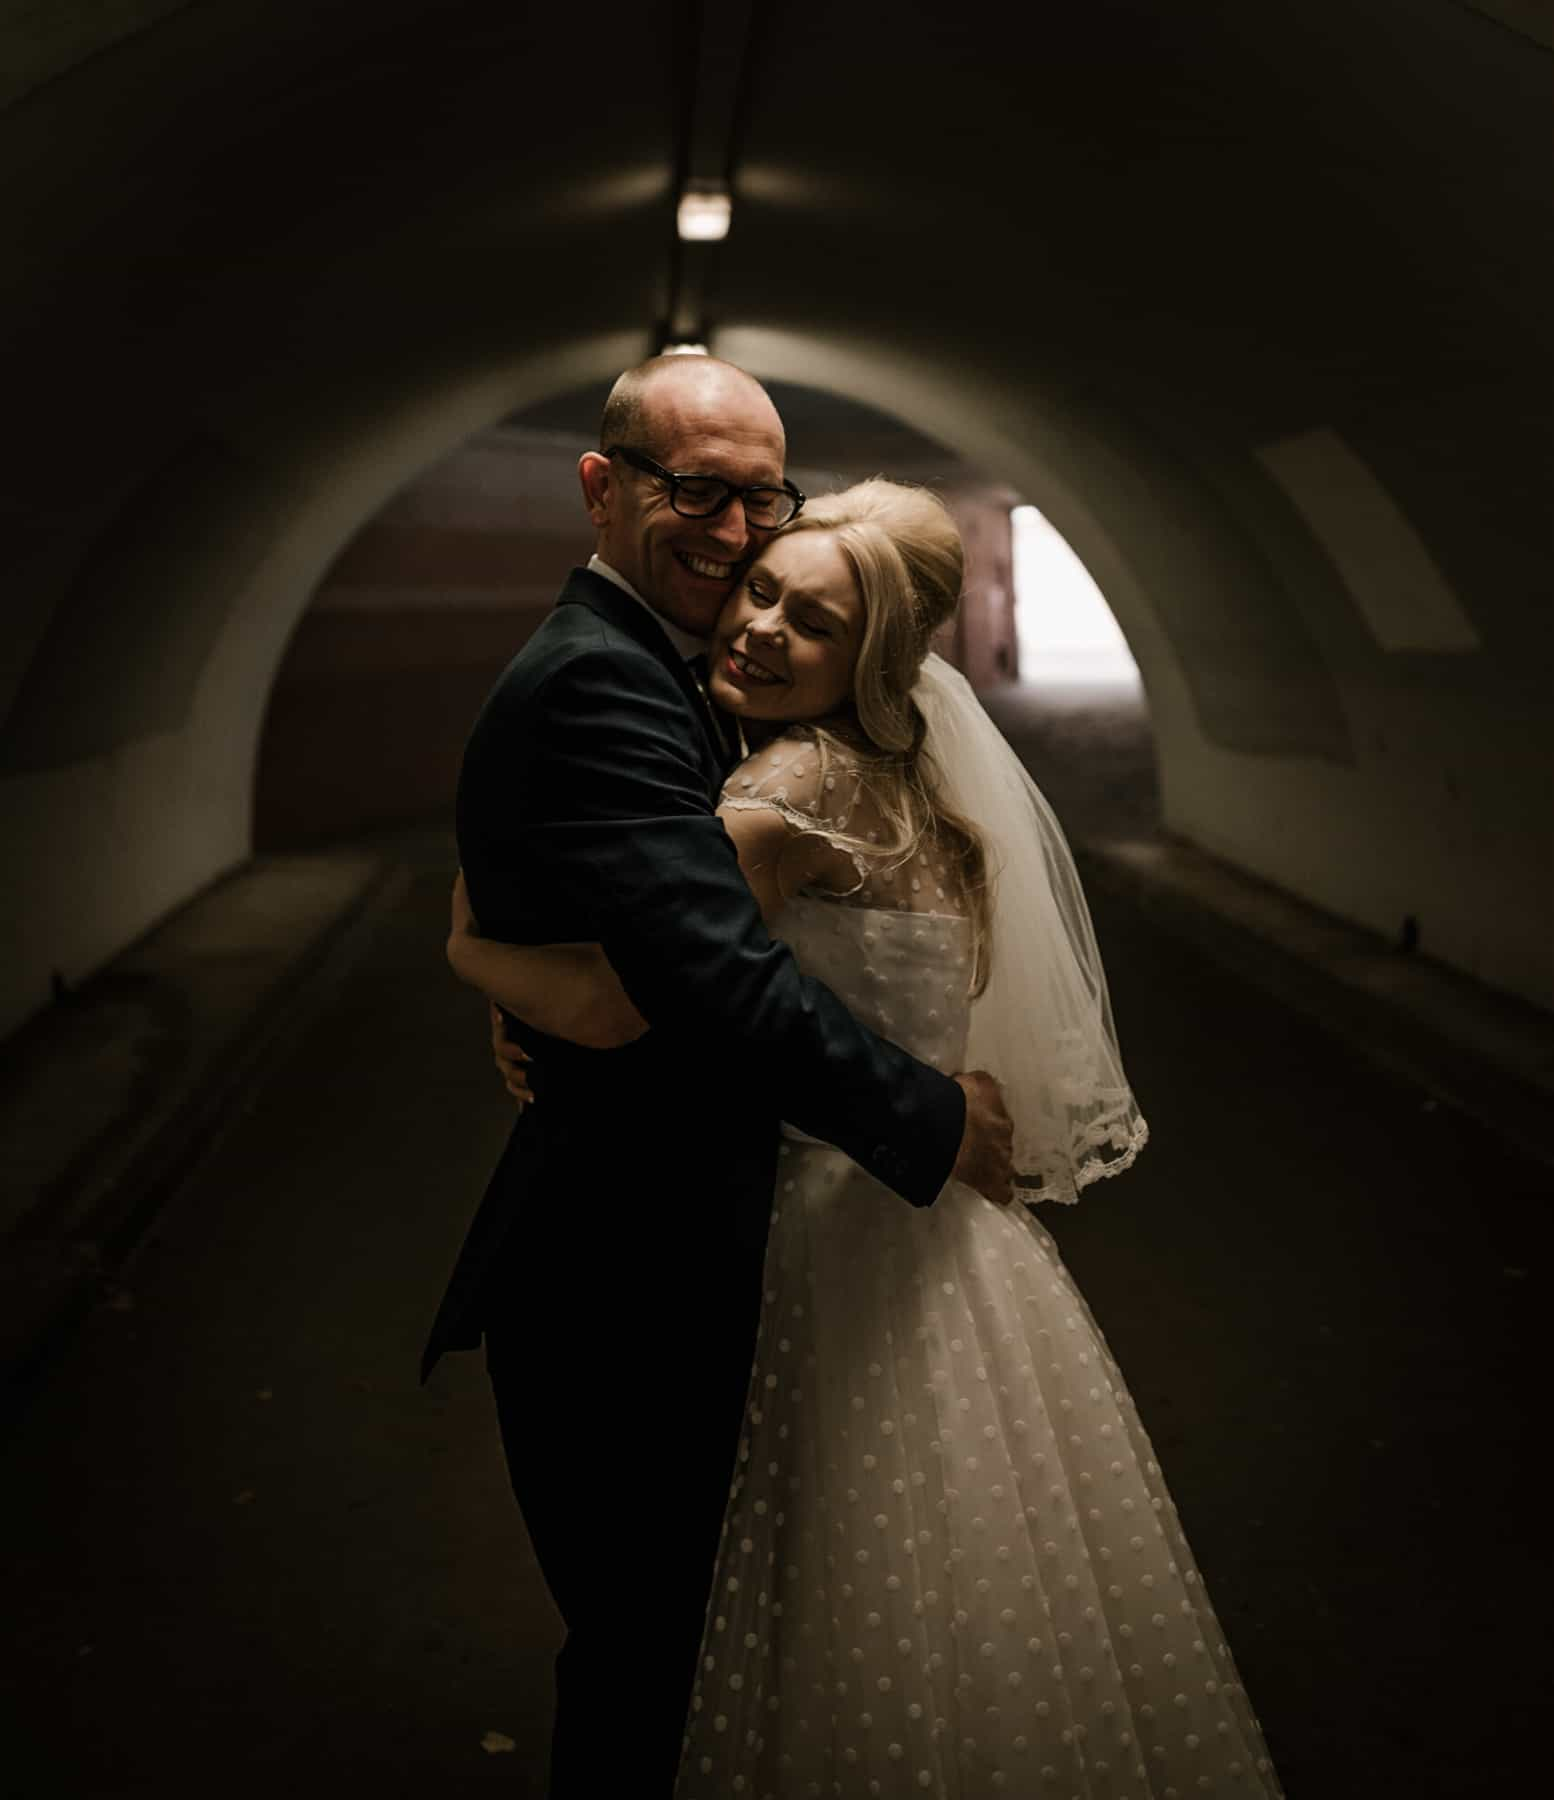 bride and groom in a tunnel